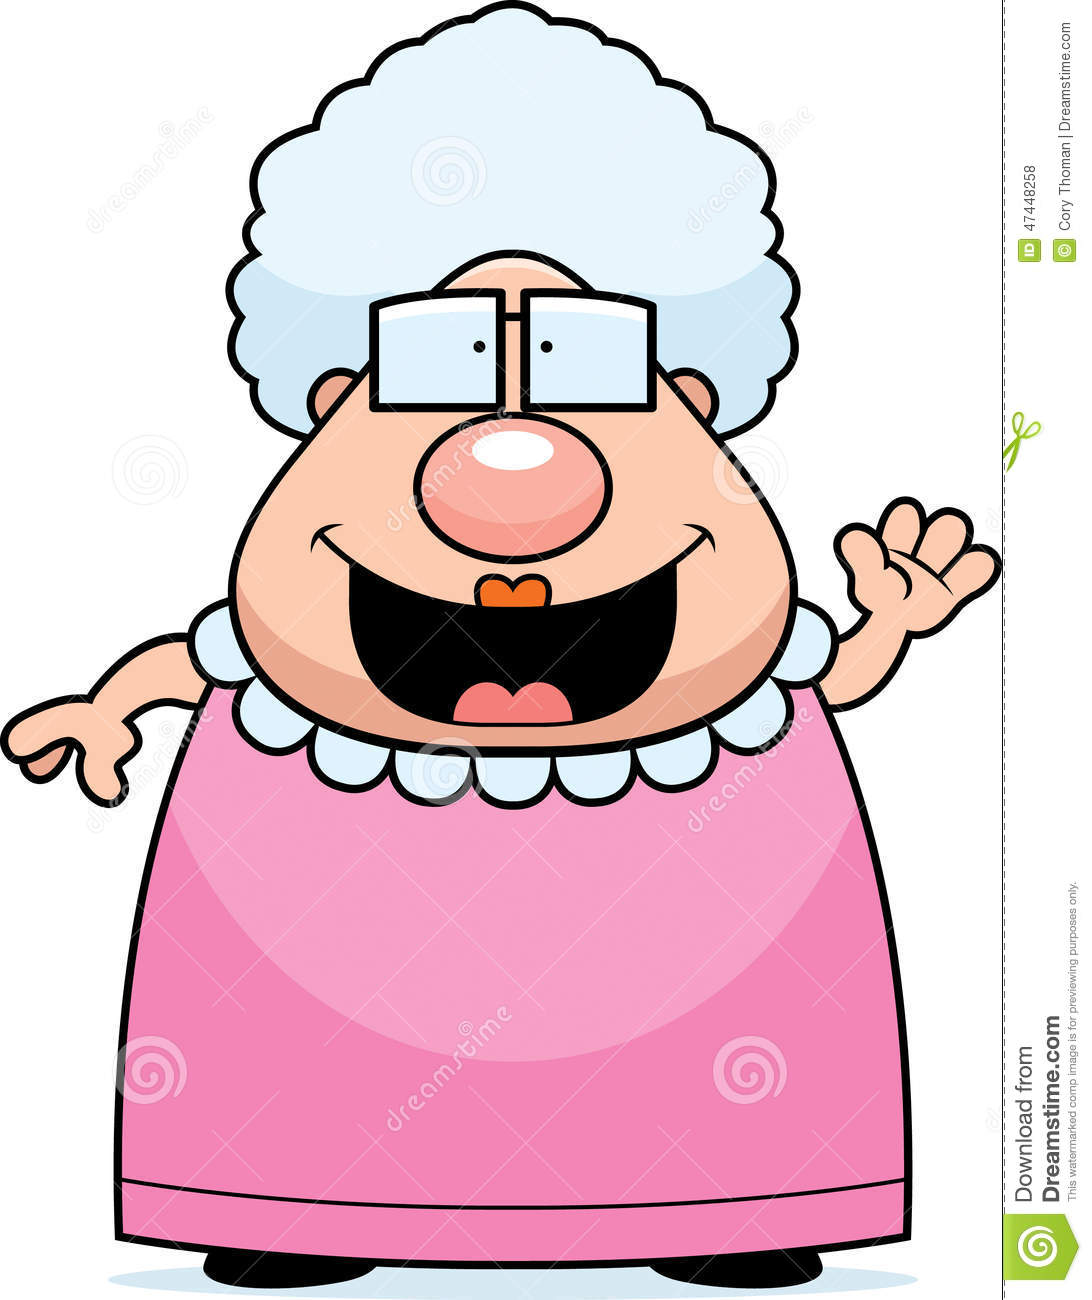 Cartoon Grandma Waving Stock Vector - Image: 47448258